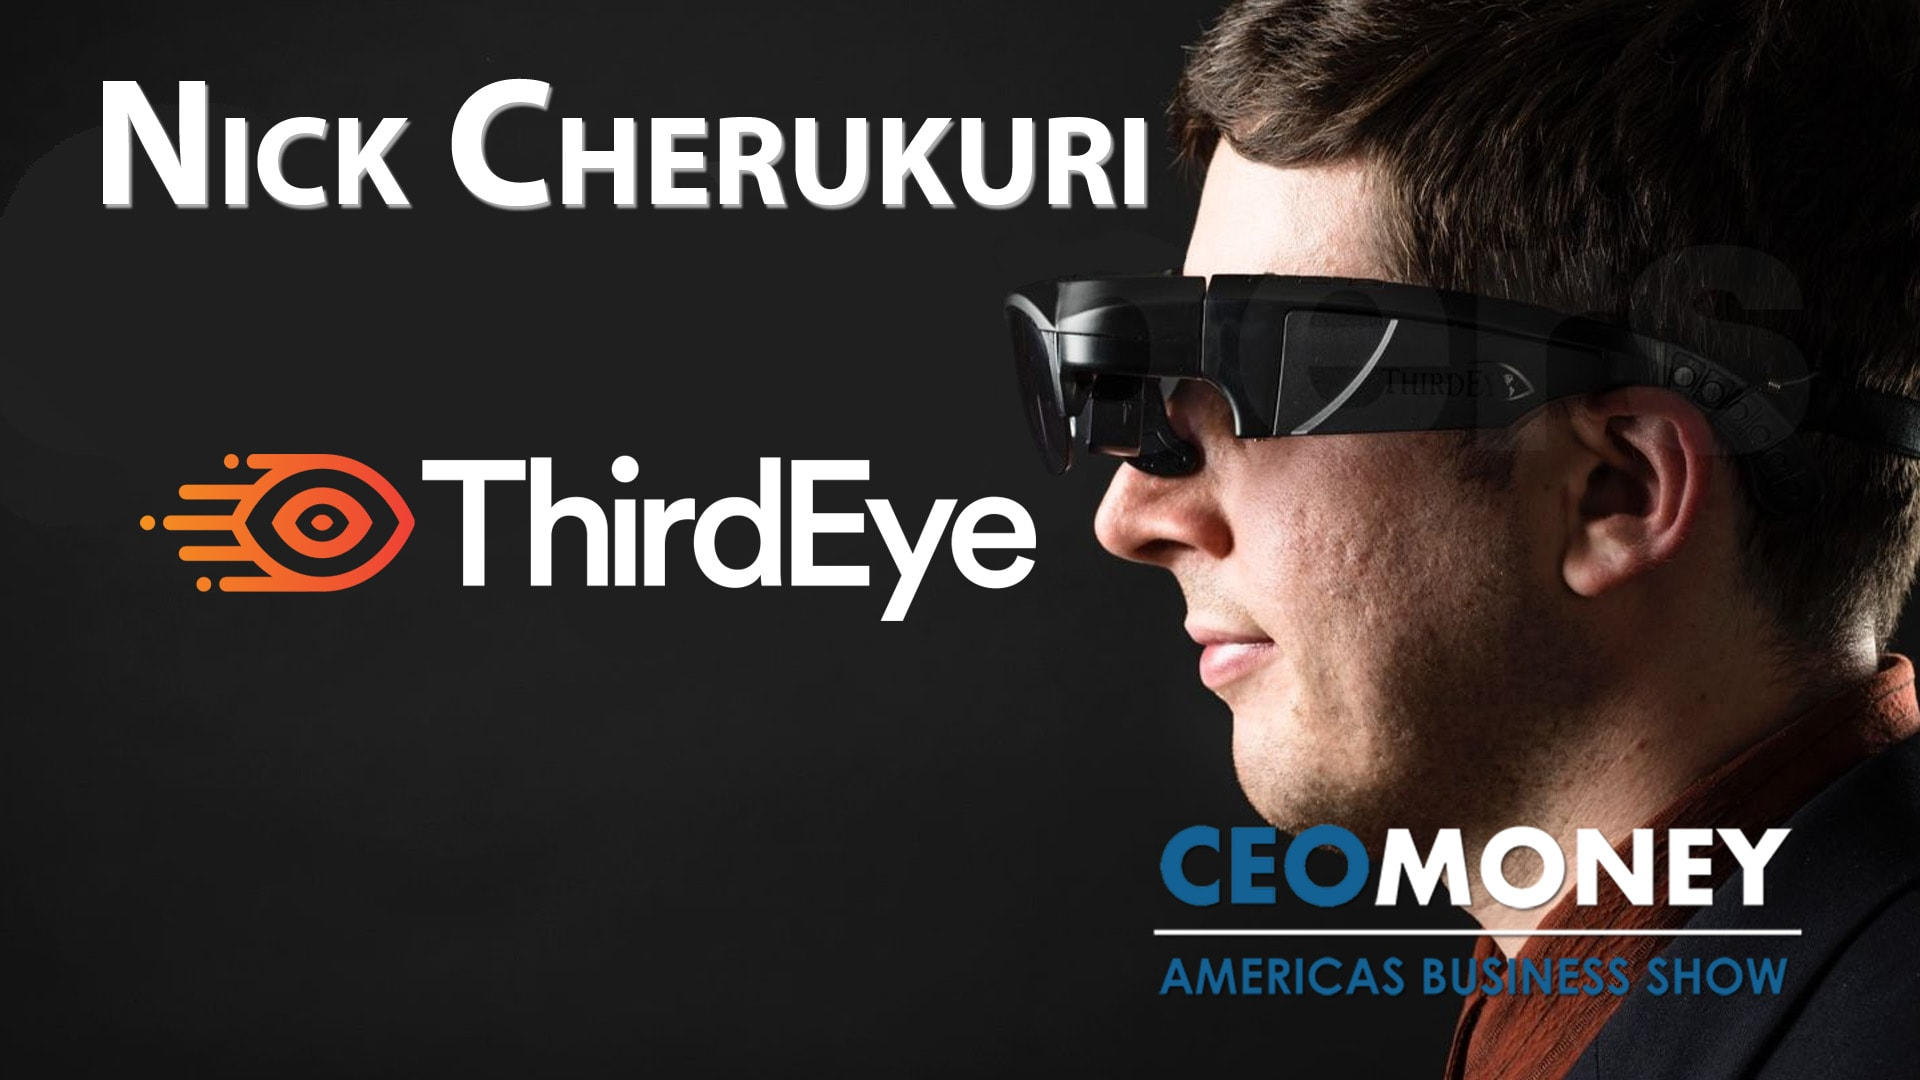 ThirdEye Gen is developing the next generation of Augmented & Mixed Reality glasses